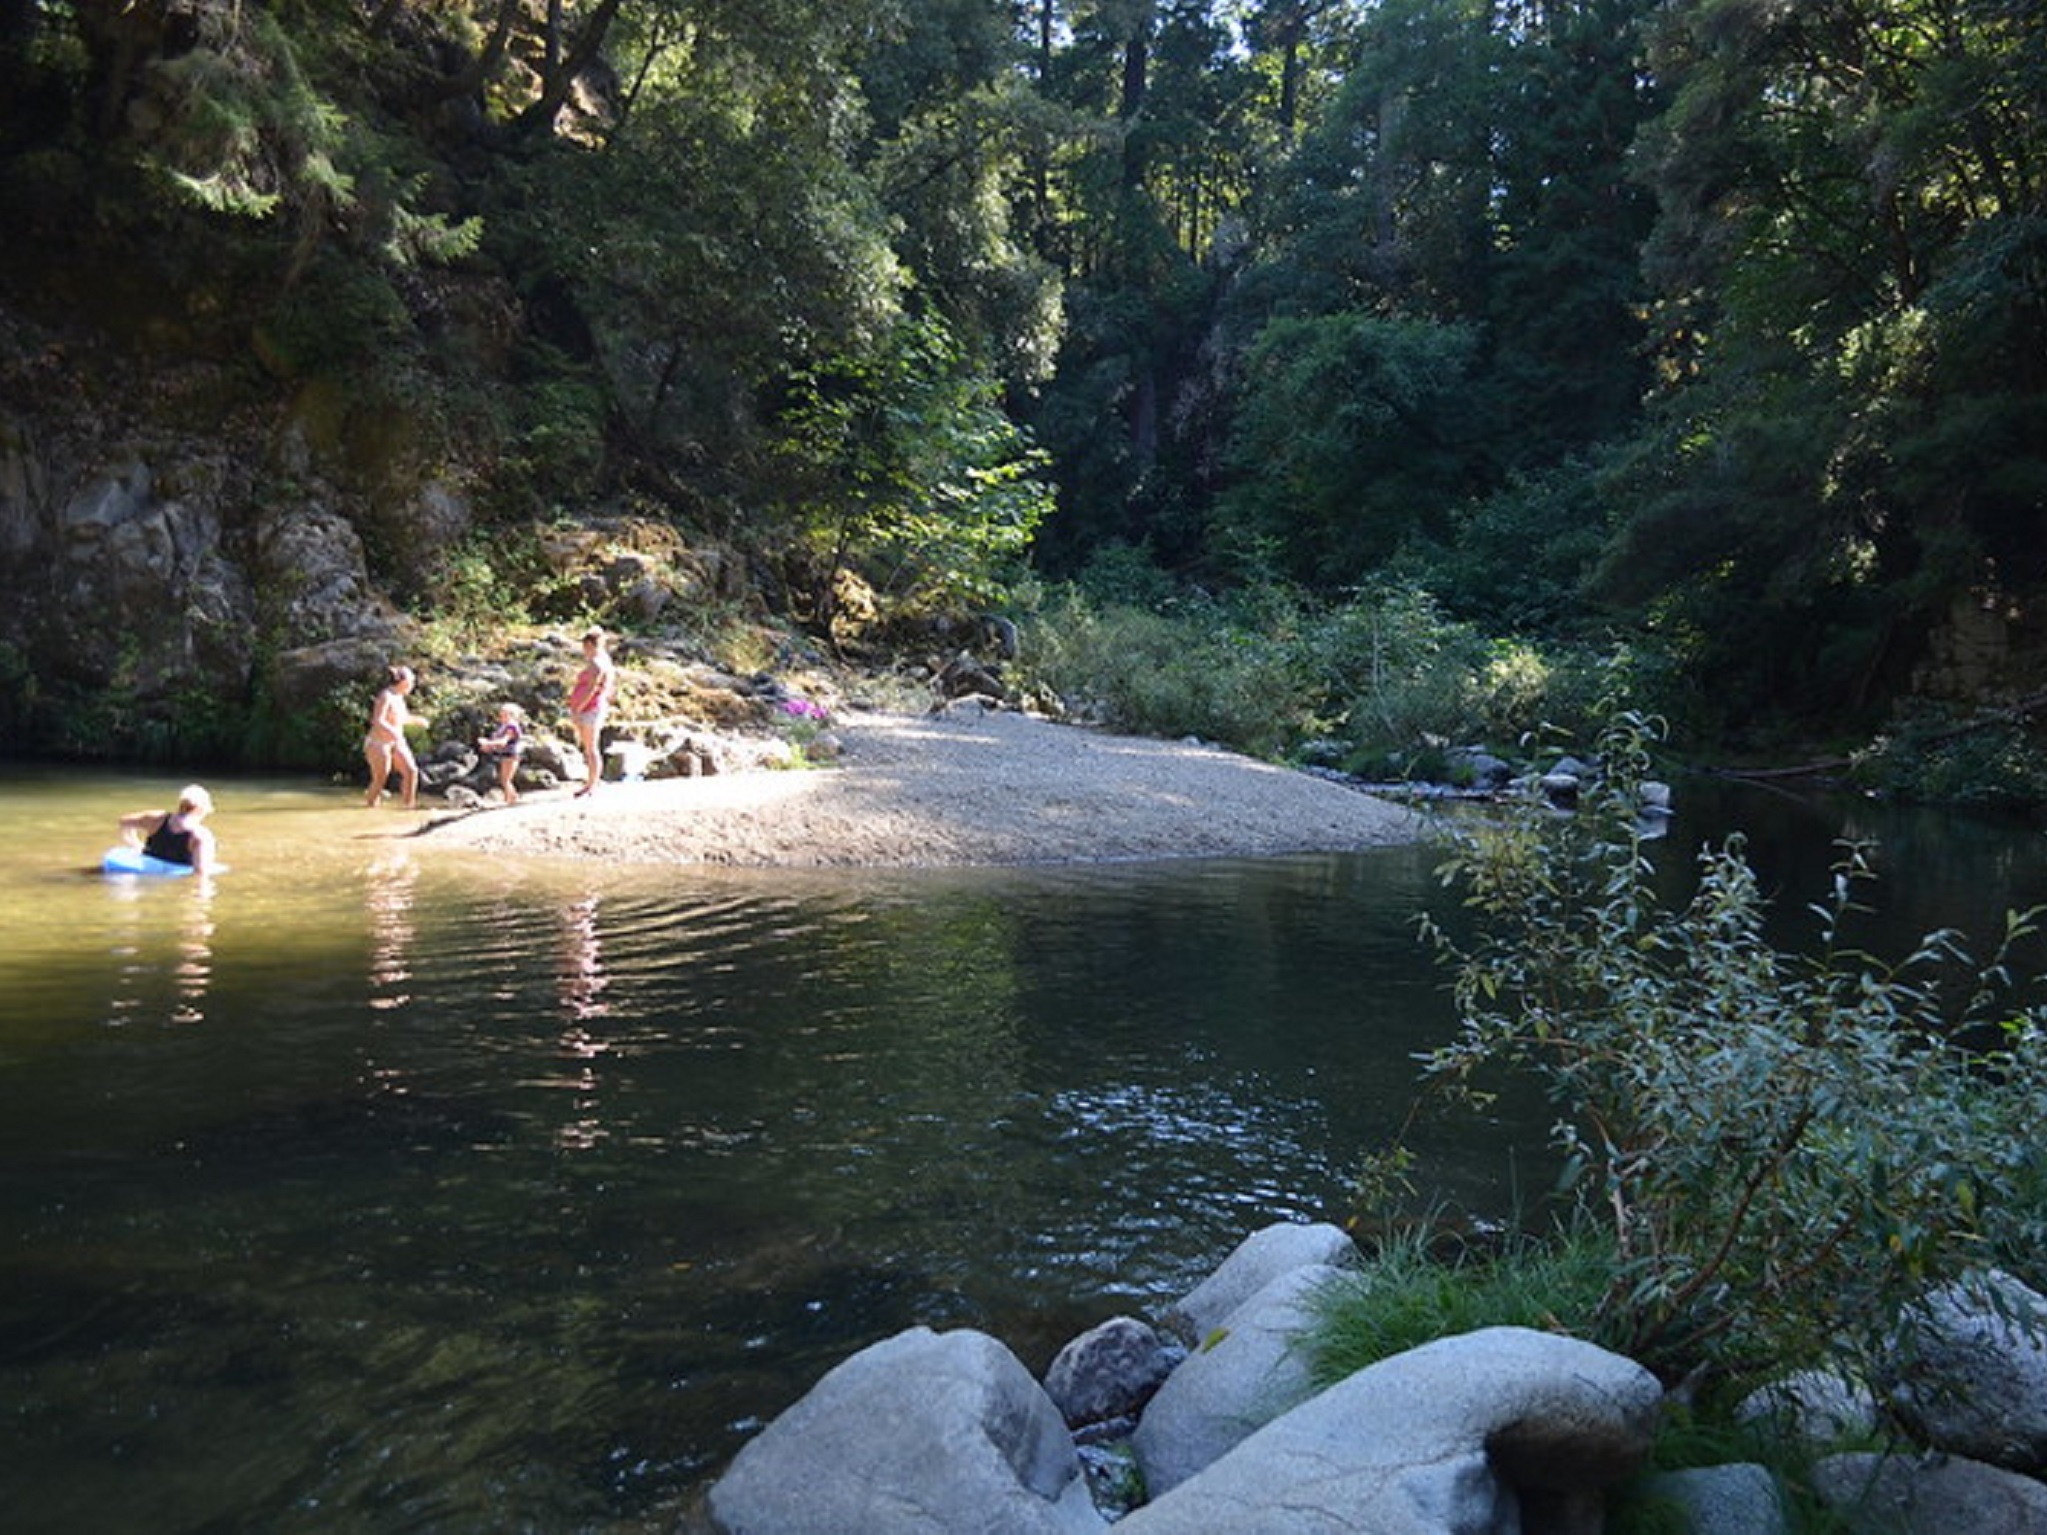 People floating in a river surrounded by redwoods